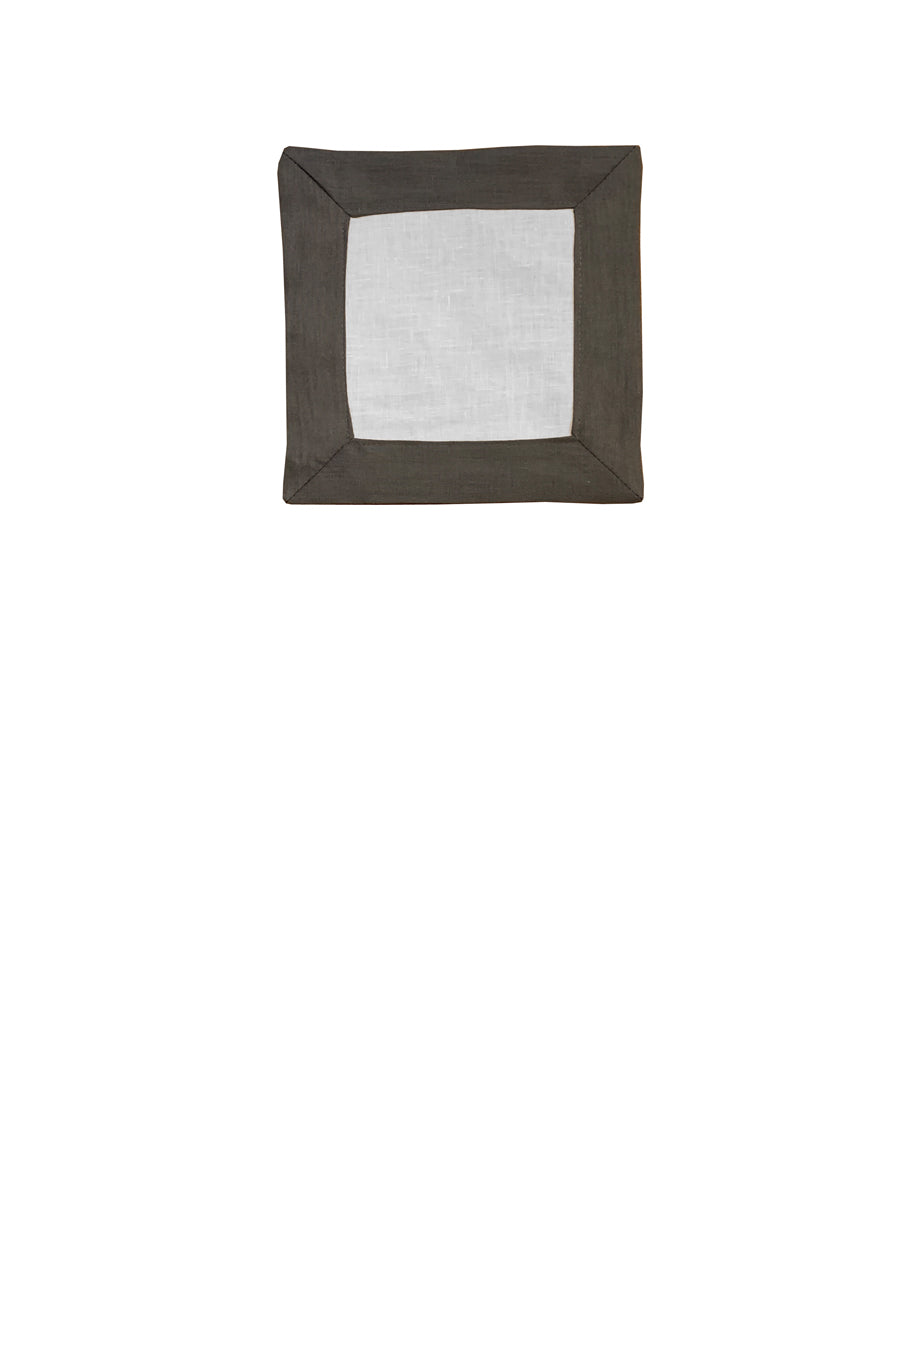 Contrast Border Cocktail Napkin Grey/White